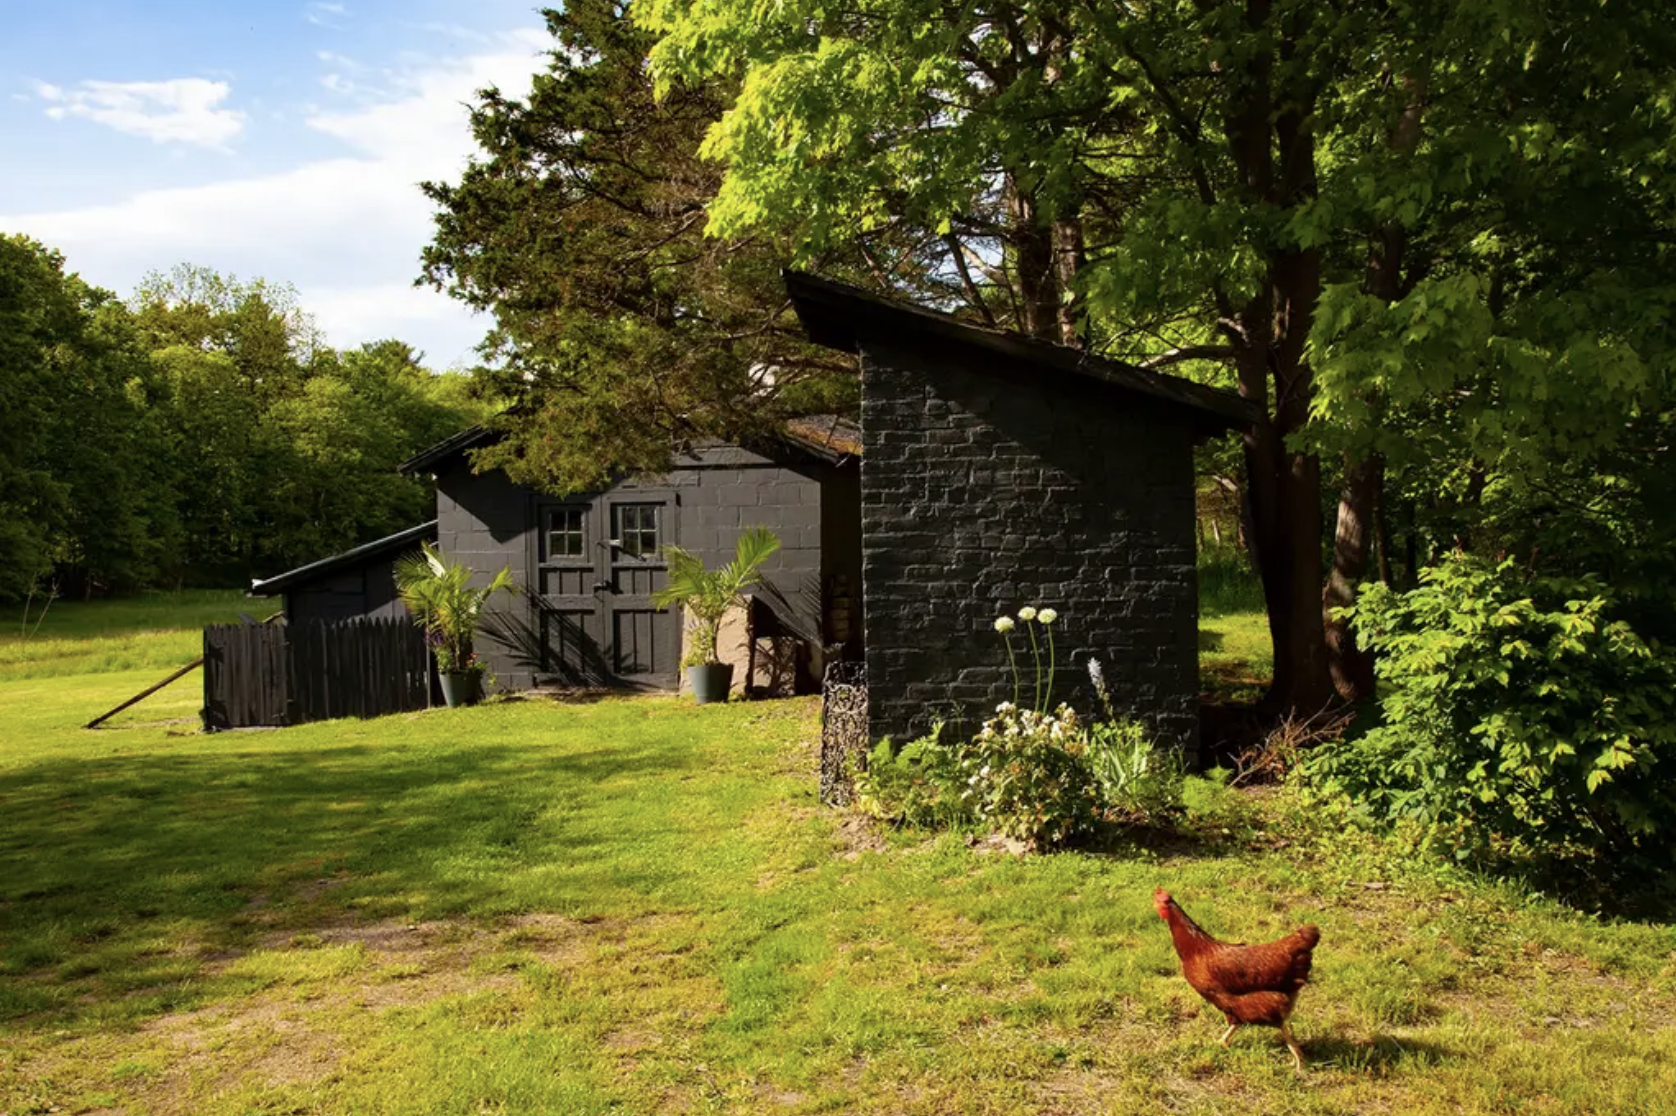 Glasco-ChickenCoop-Saugerties-NY.png